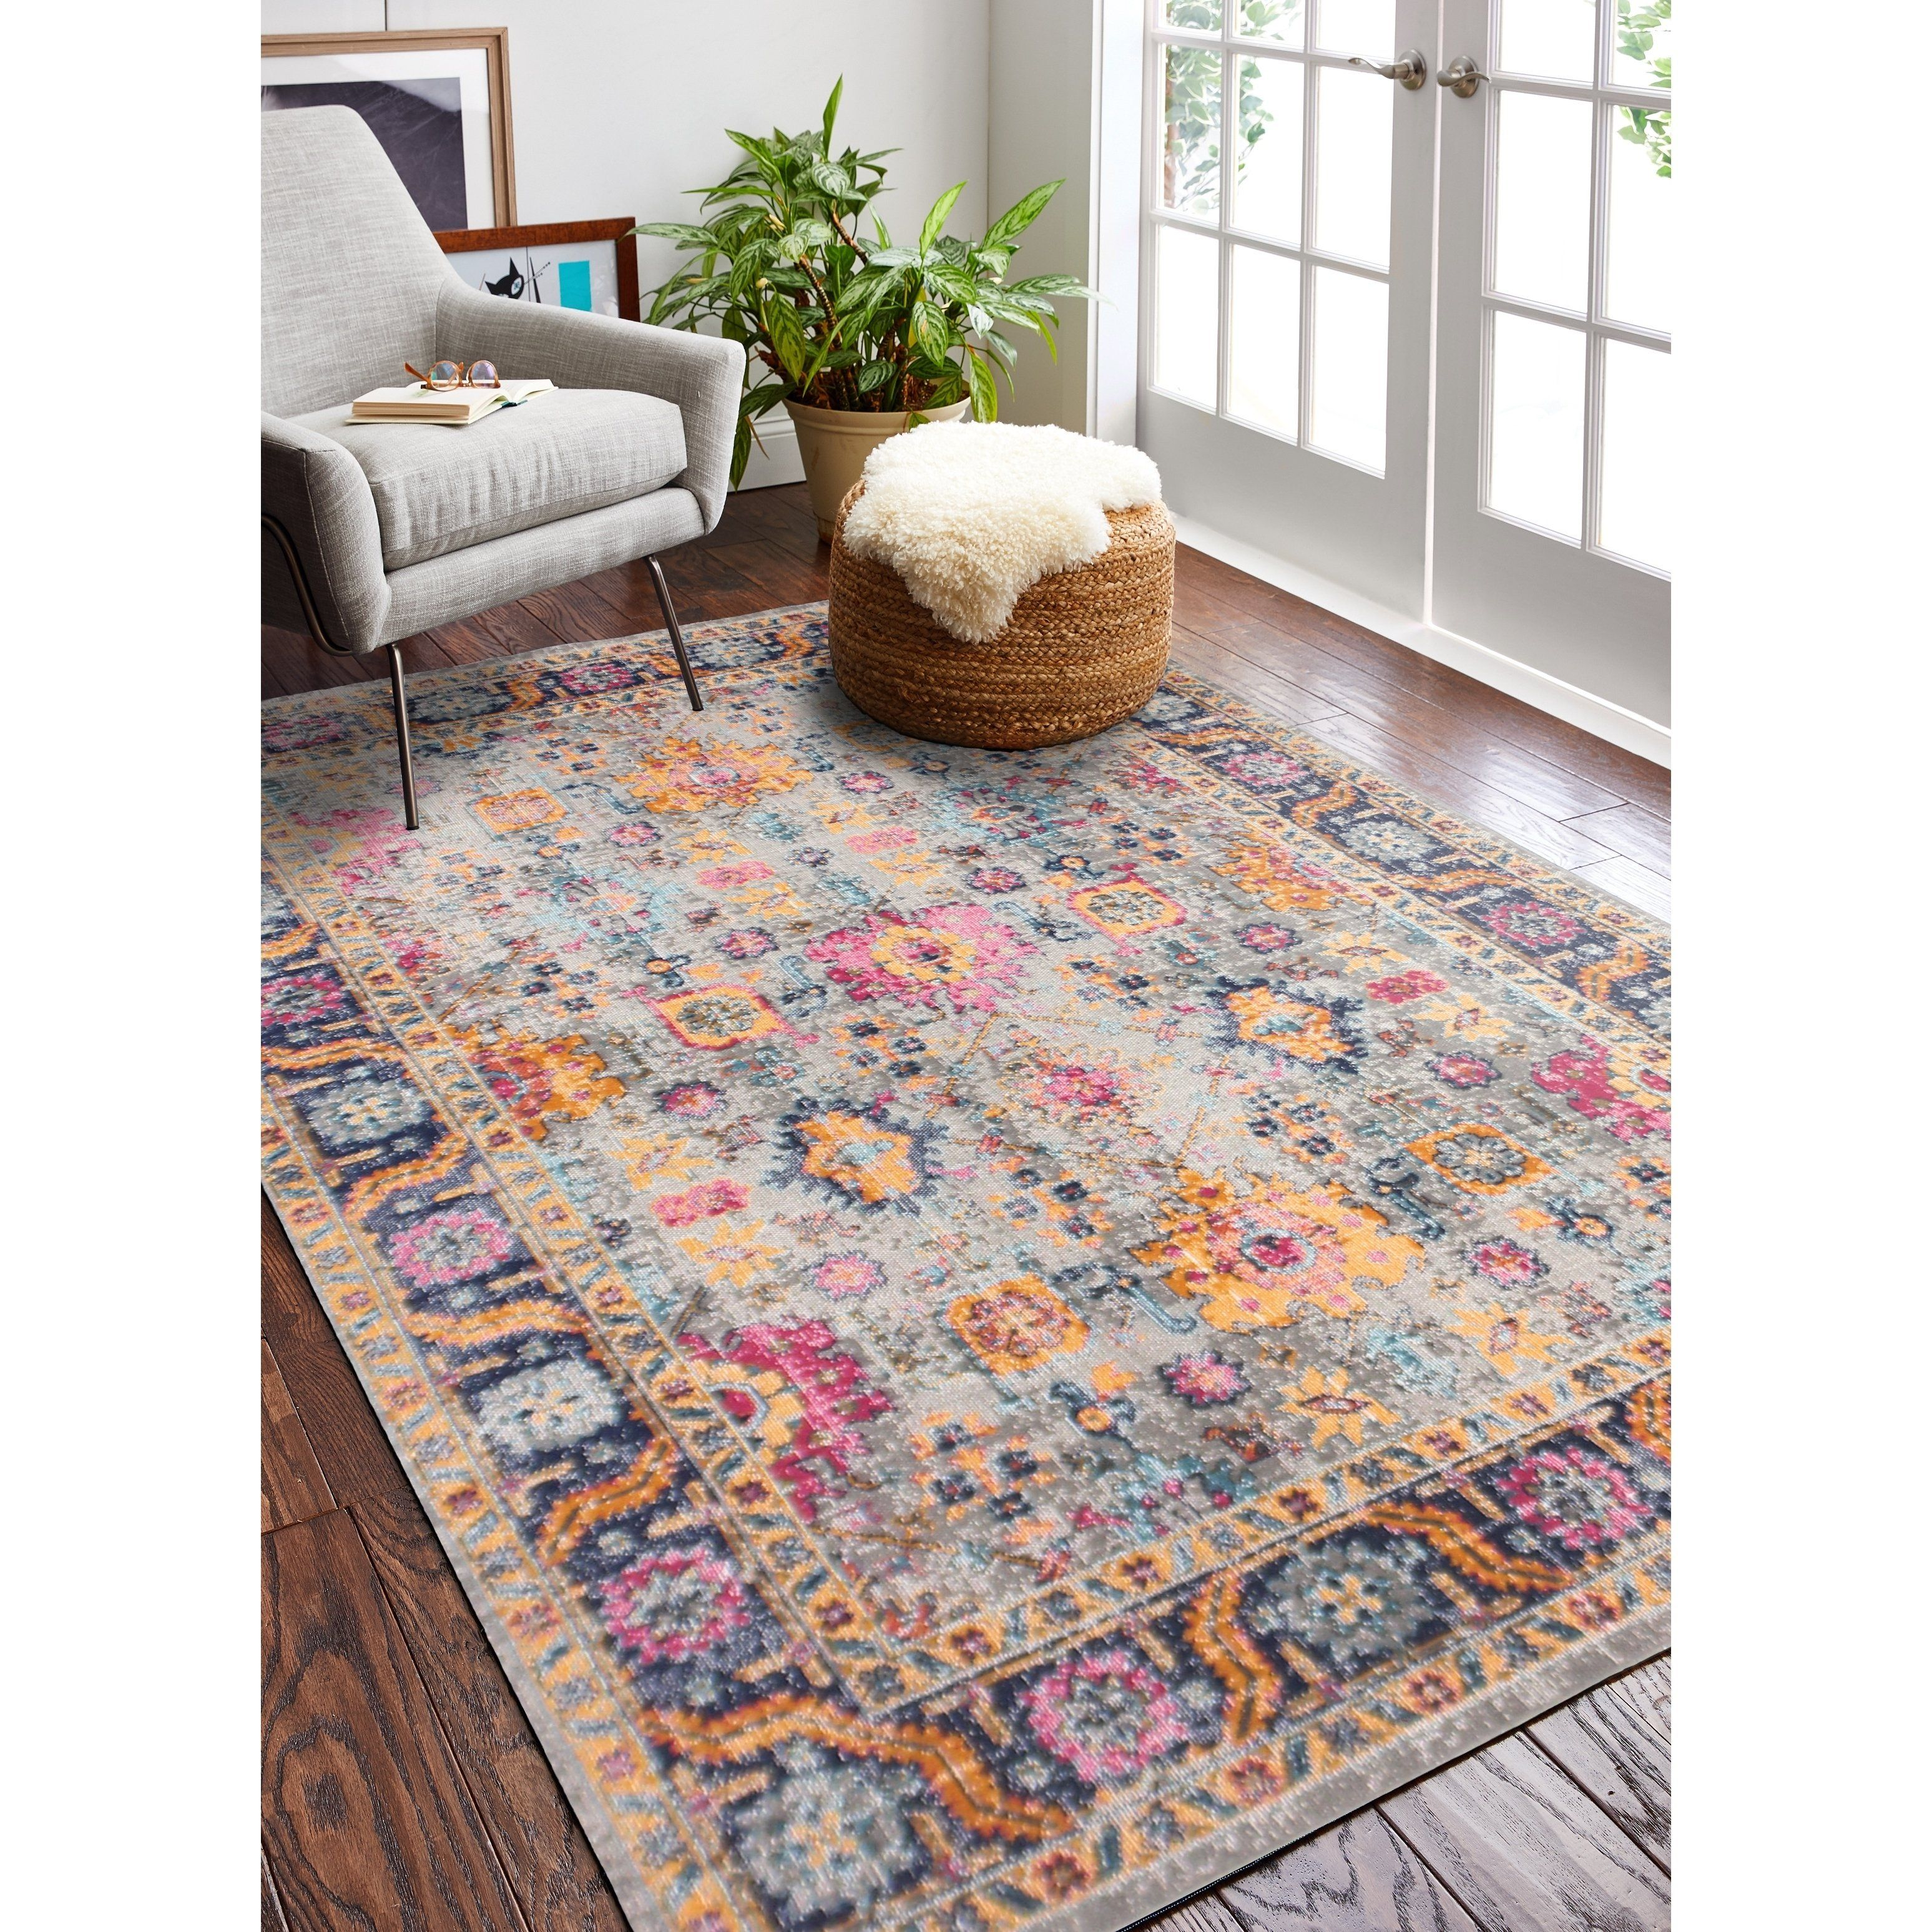 Nate Grey Transitional Area Rug 8 7 X 11 6 Grey 8 7 X 11 6 Gray Transitional Area Rugs Area Rugs Rugs